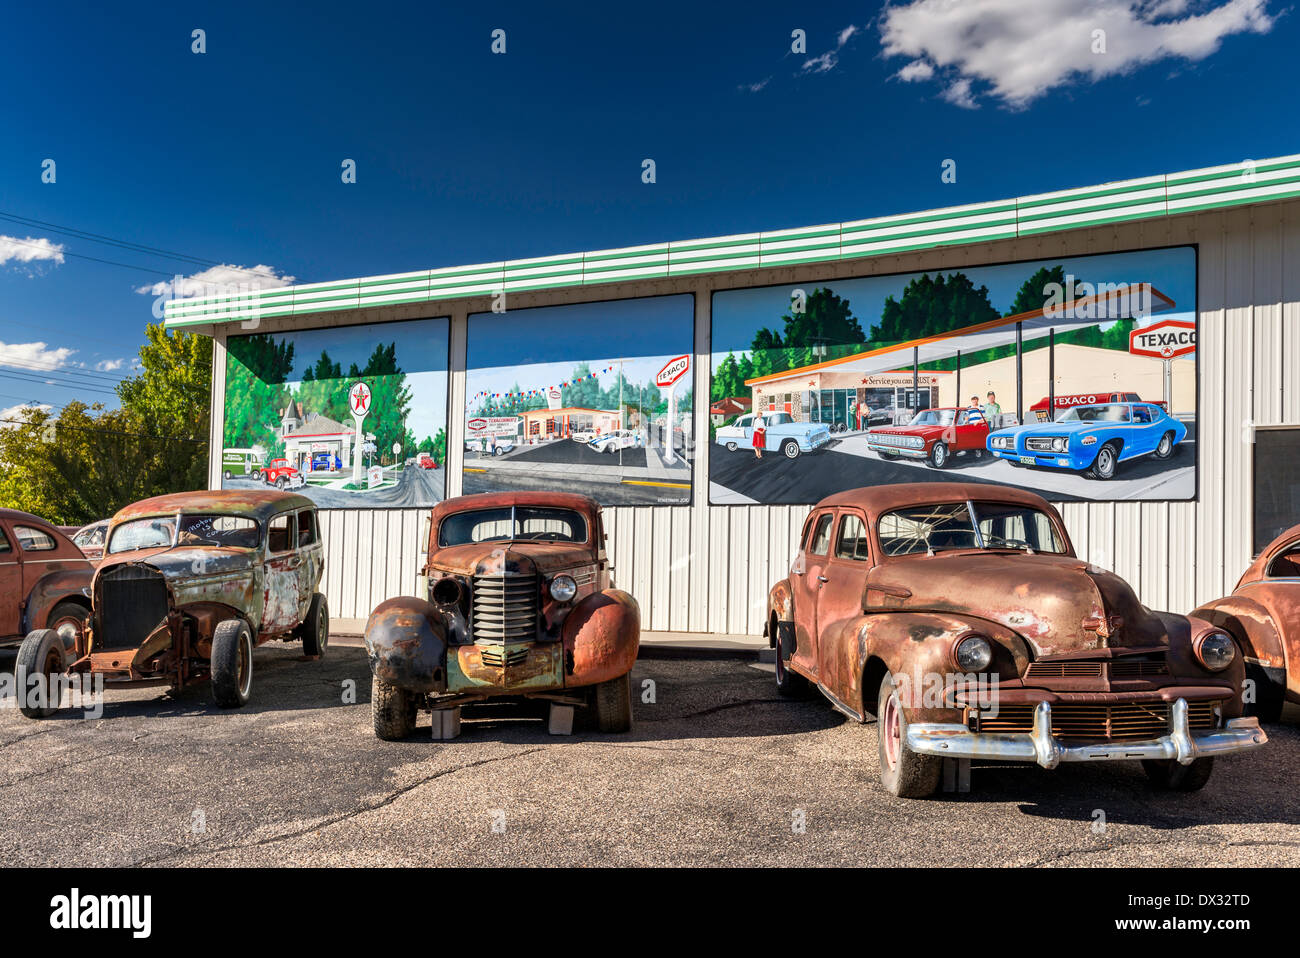 Old Cars For Sale Stock Photos & Old Cars For Sale Stock Images - Alamy